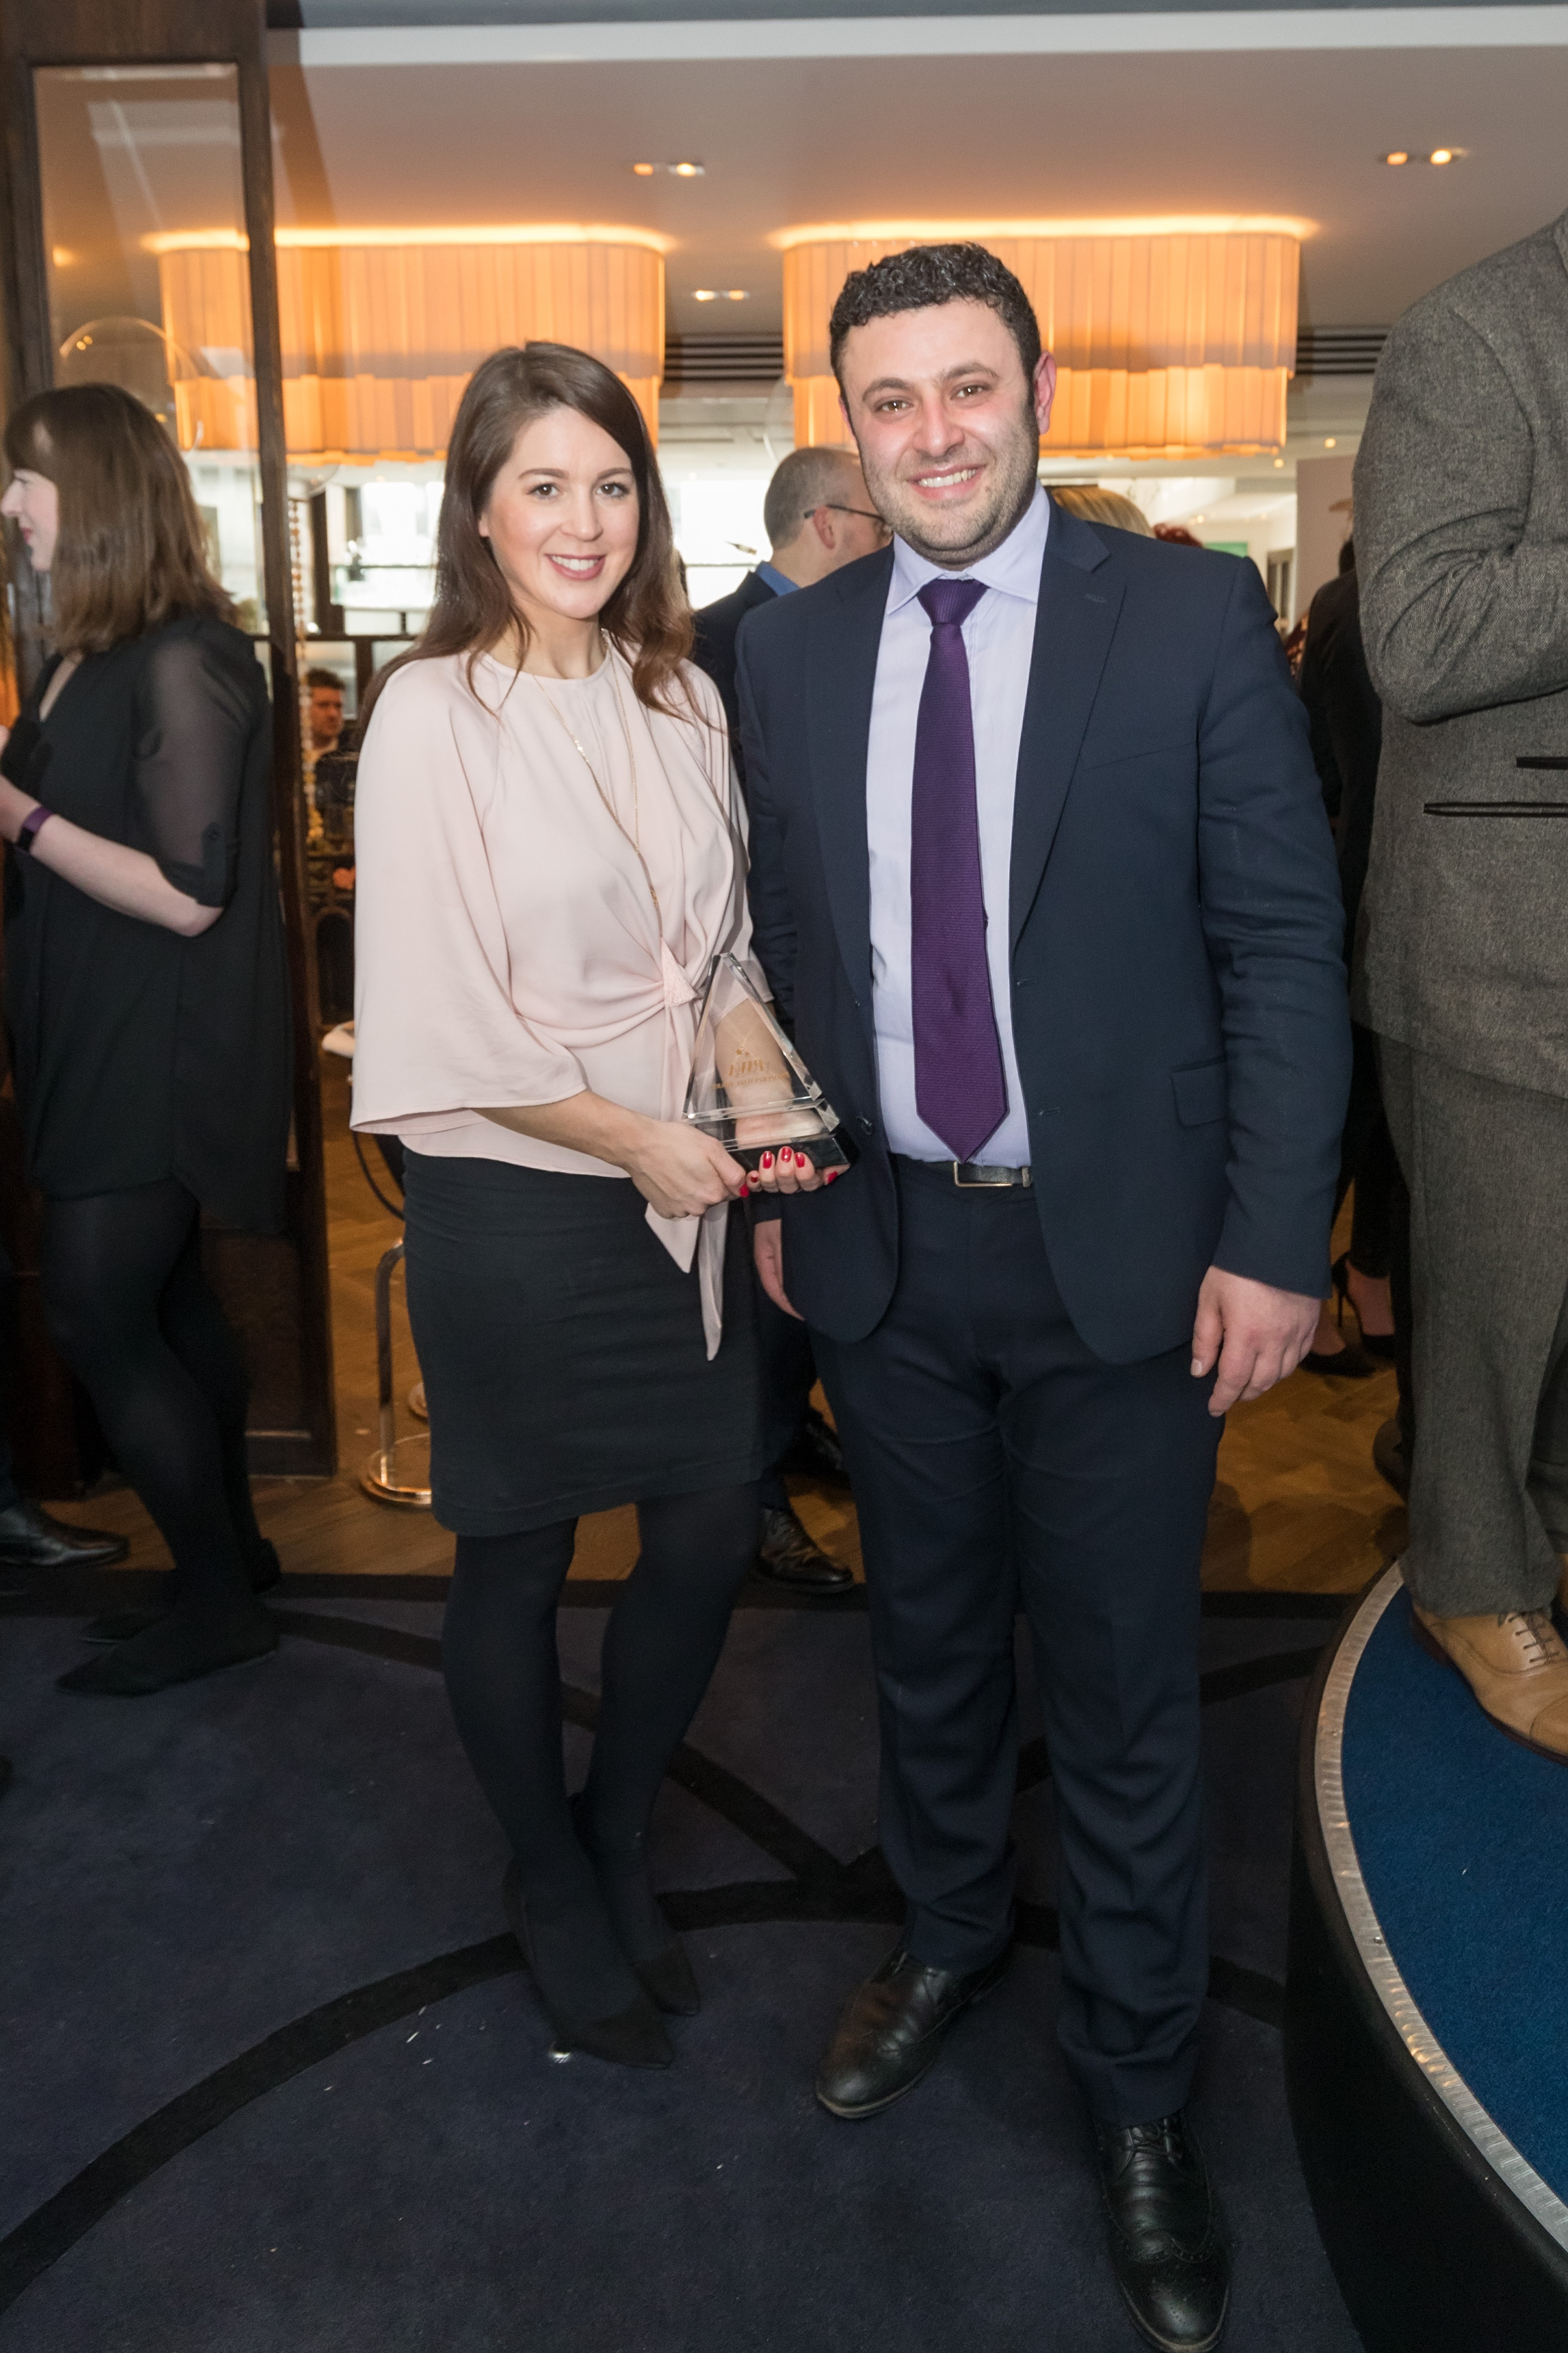 Hannah and Shadey holding the award for best lettings agent and smiley